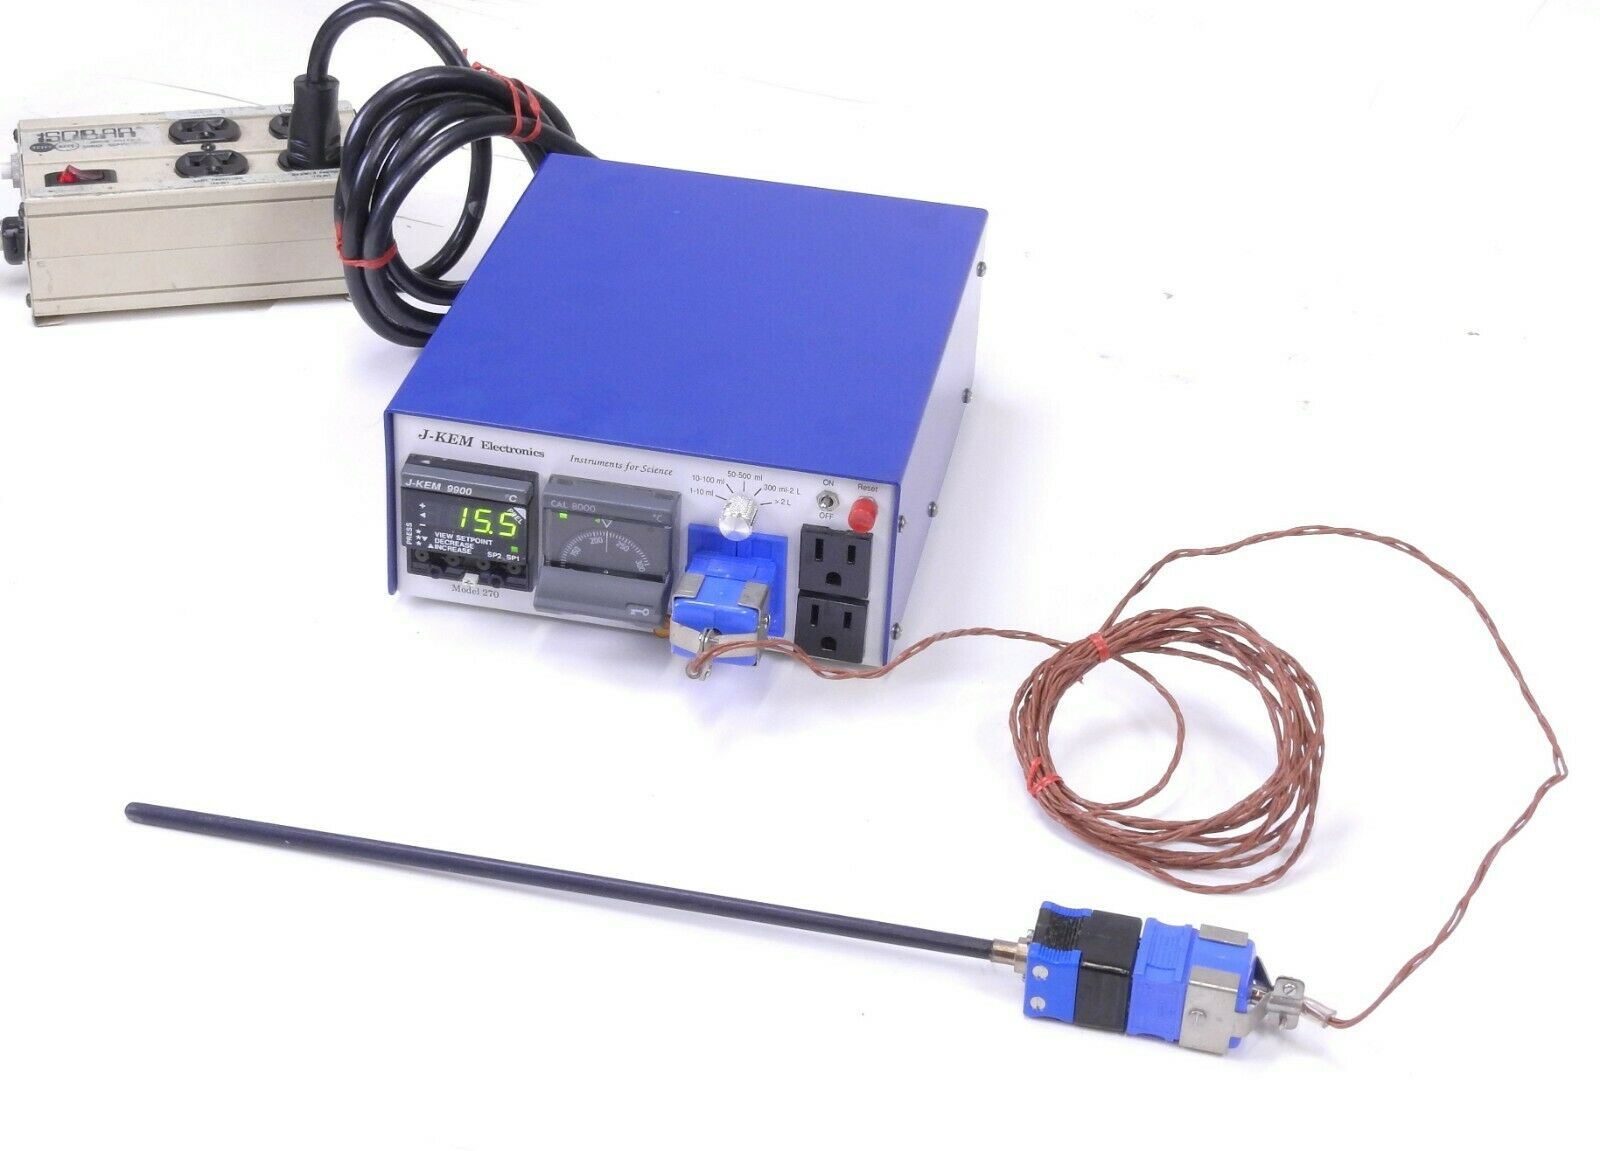 NDT Eddy Current Probe Tube Inspection 6100-1//8S Ideal Specialty With BNC Cable